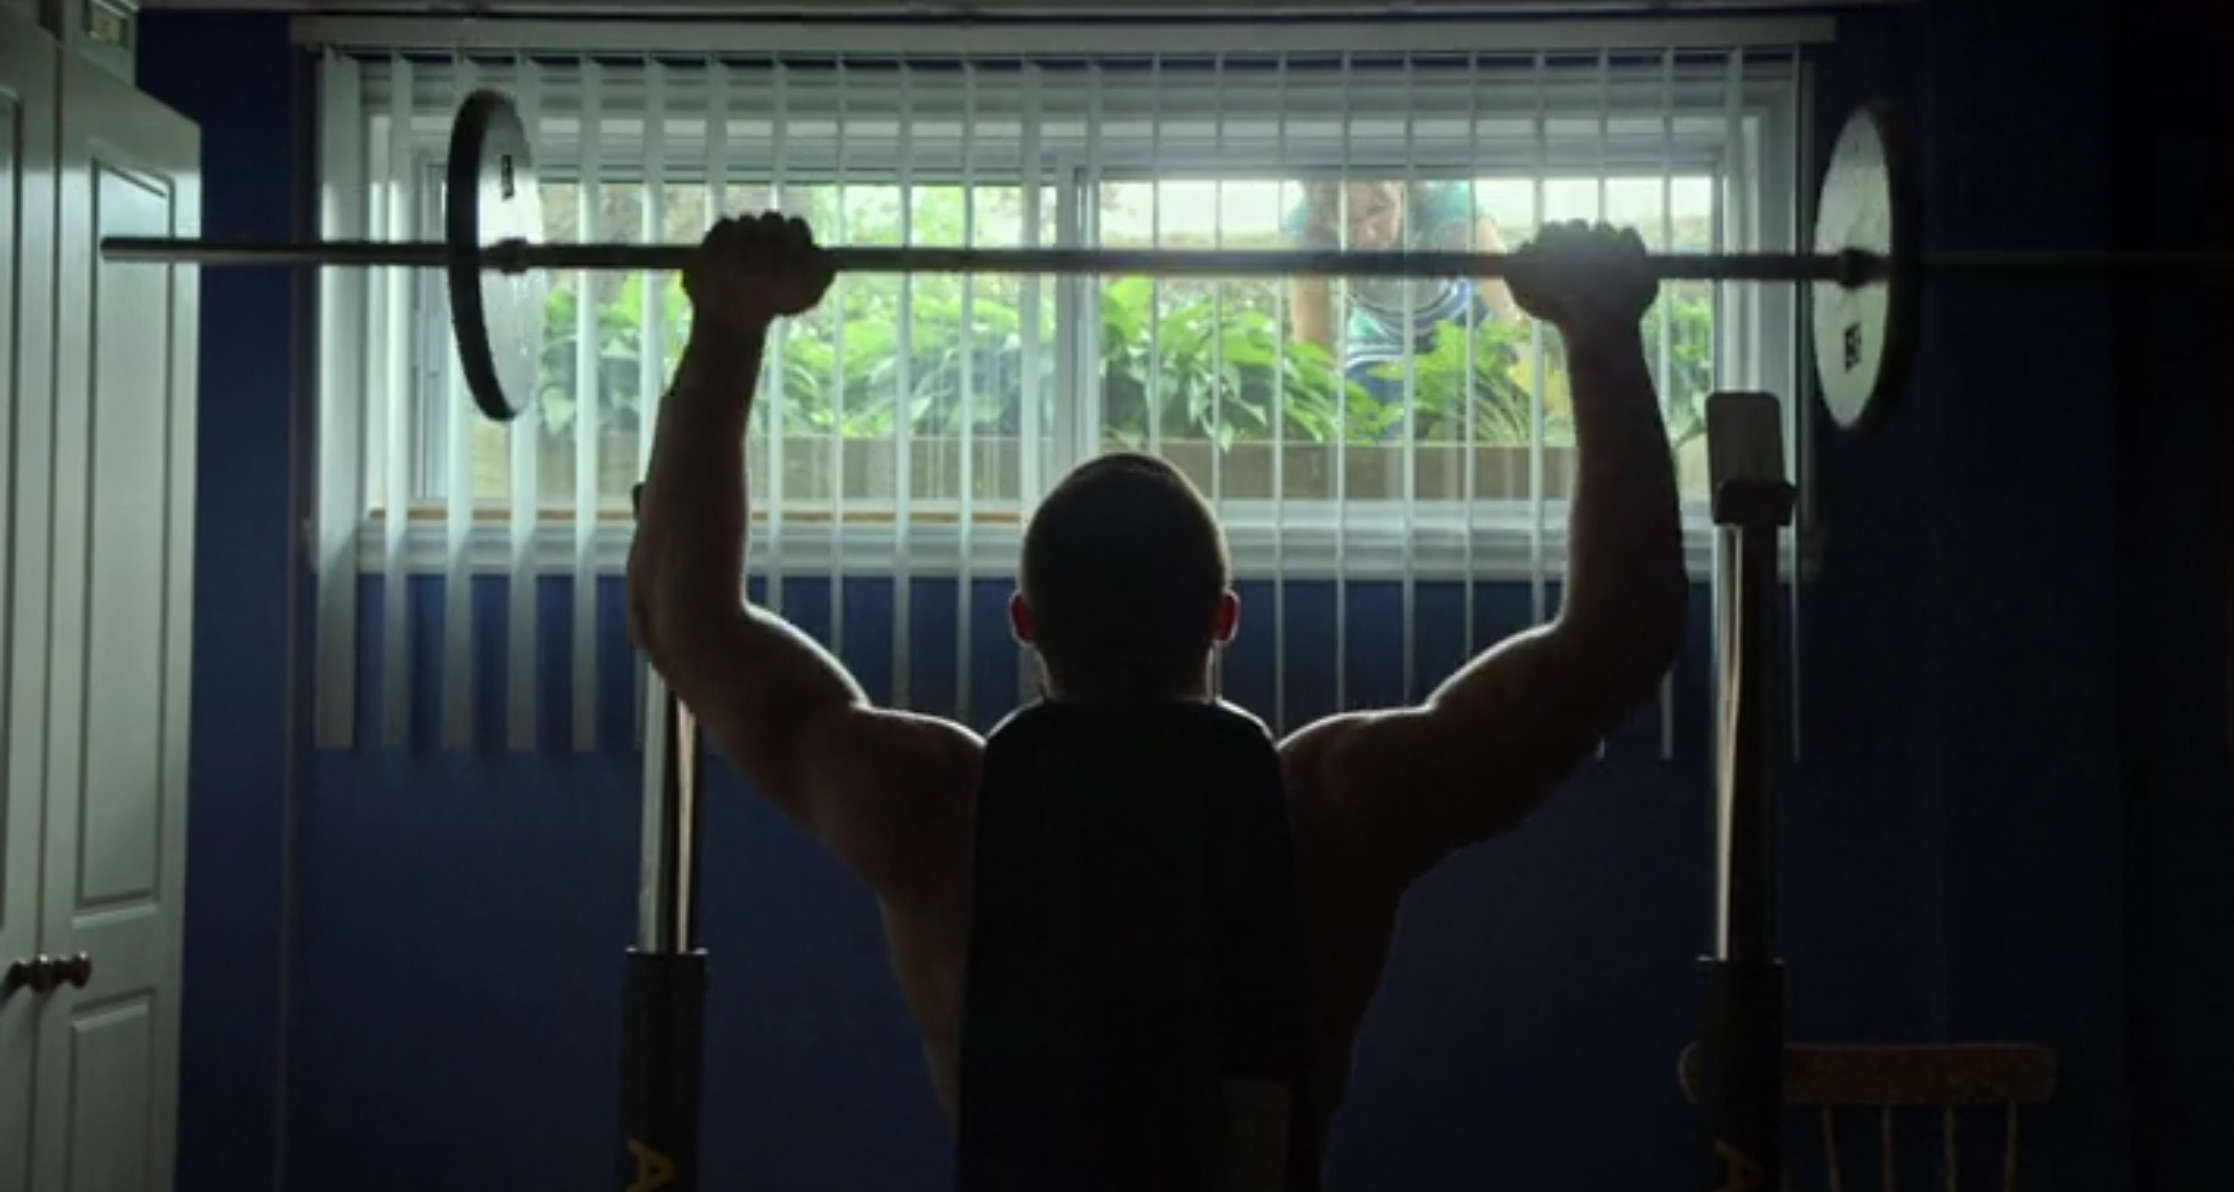 Man lifting weights, still from Ta peau si lisse, directed by Denis Côté